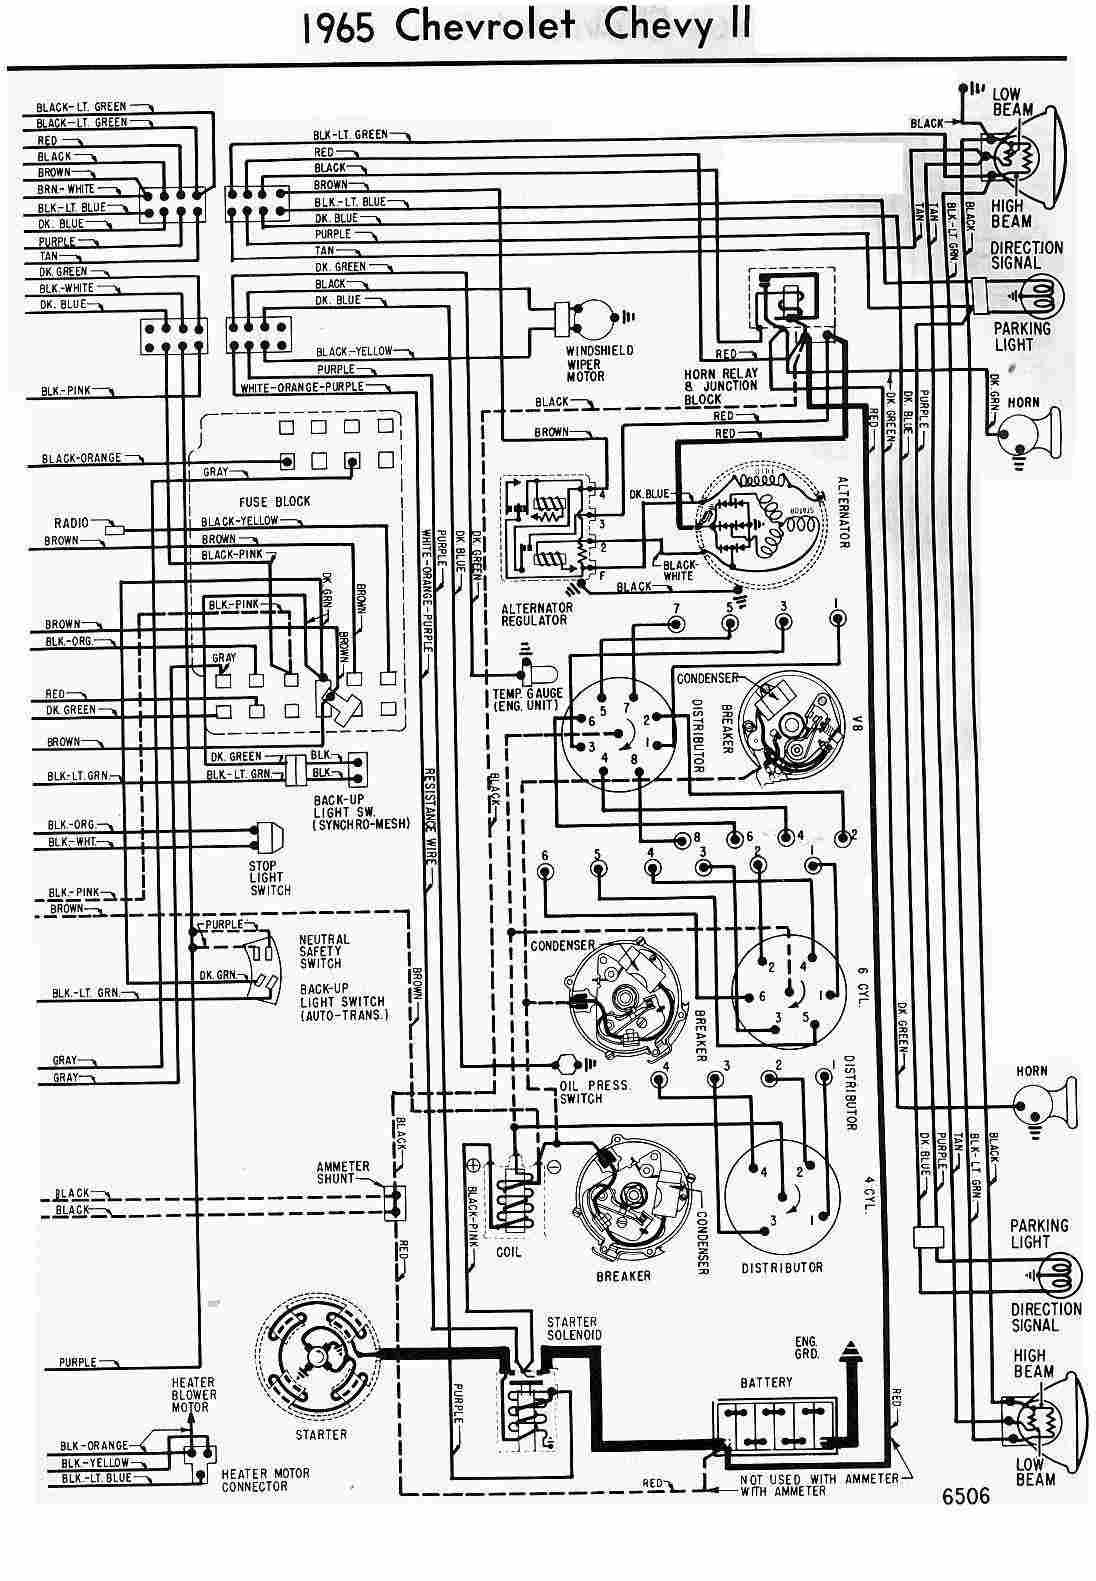 chevrolet car manuals wiring diagrams pdf fault codes 1966 chevy ii wiring harness 1965 Chevy II